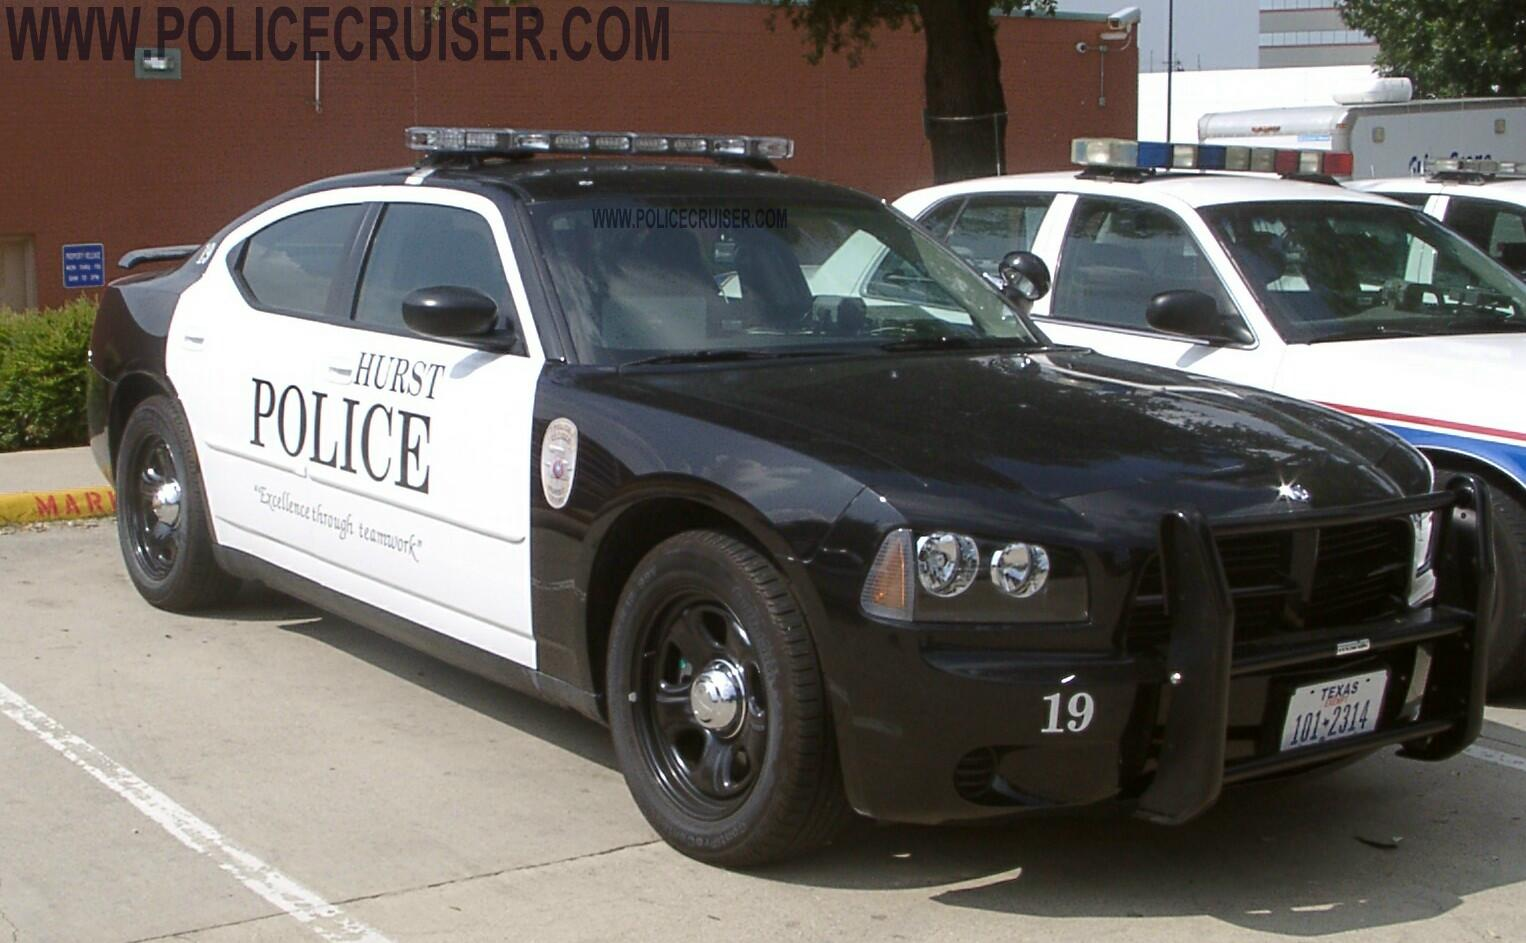 Used Chevy Motors Welcome to Police Cruiser Dot Com. Your source for low ...